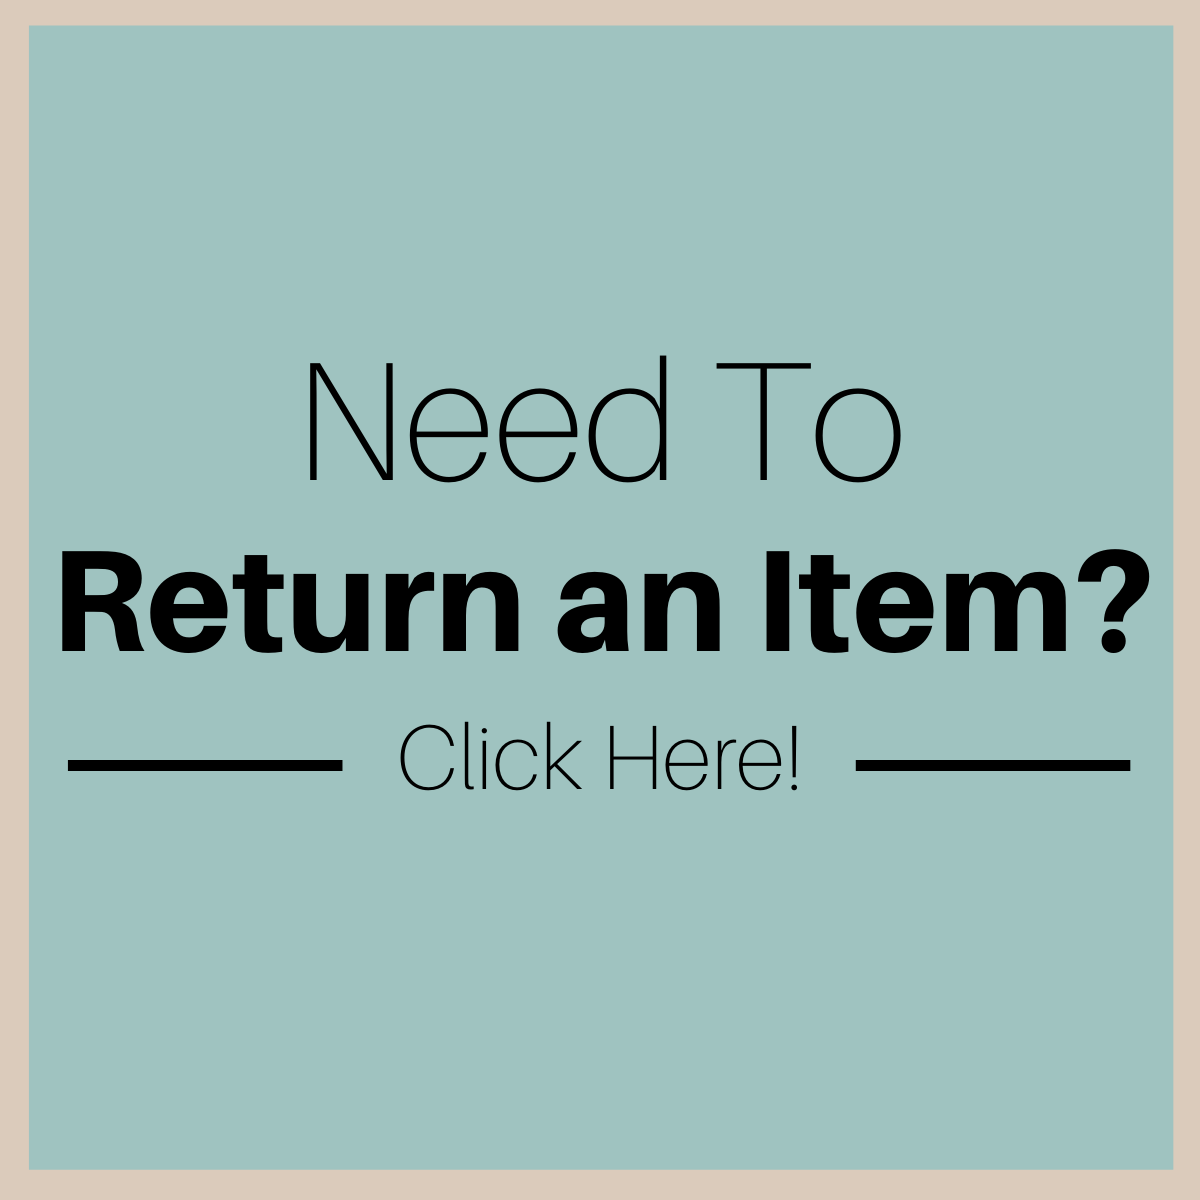 Need To Return an Item?